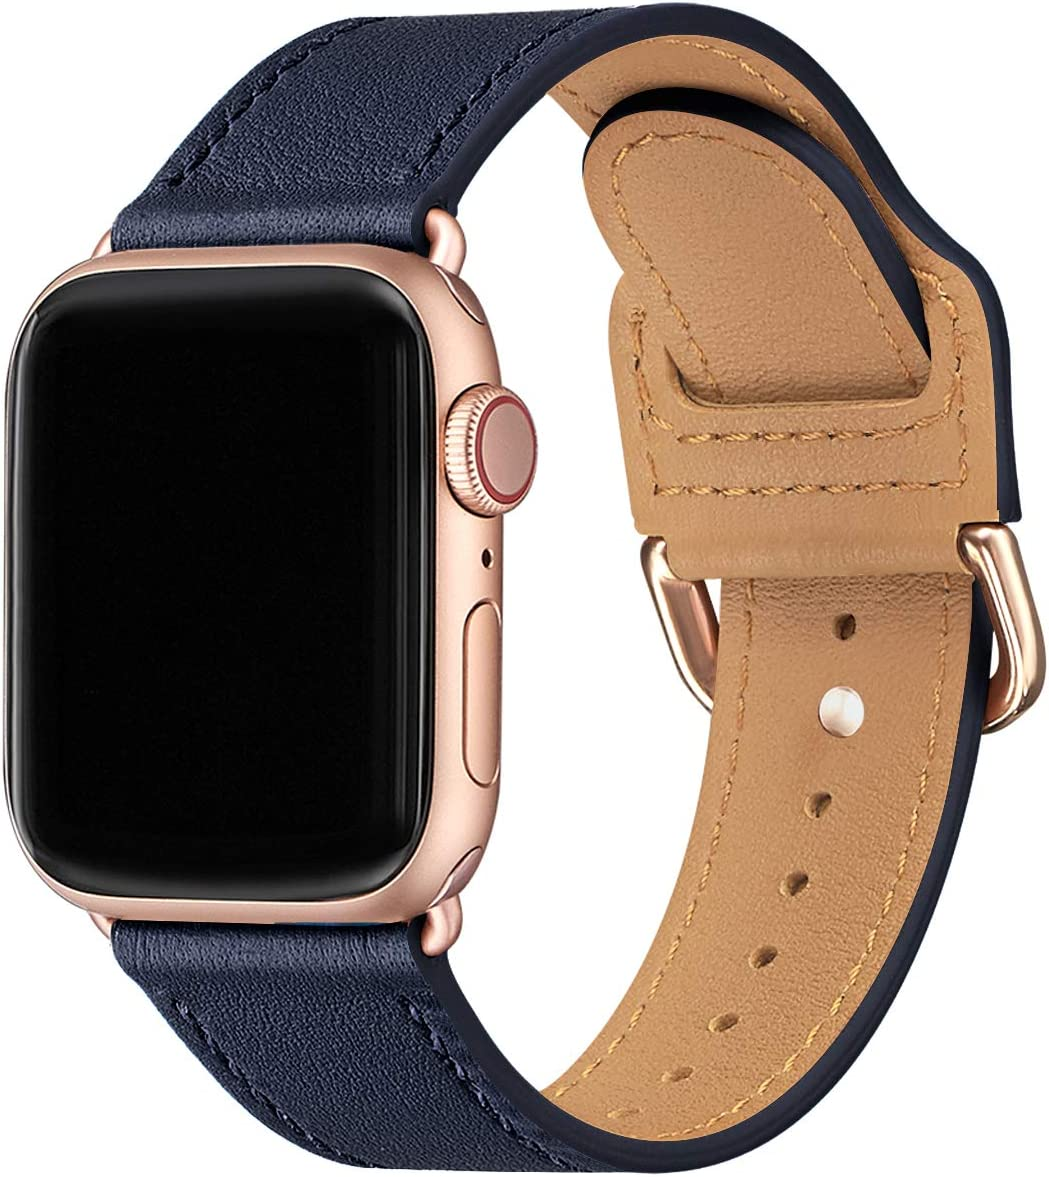 POWER PRIMACY Bands Compatible with Apple Watch Band 38mm 40mm 42mm 44mm, Top Grain Leather Smart Watch Strap Compatible for Men Women iWatch Series 6 5 4 3 2 1,SE (Jewelry Blue/Rosegold, 38mm/40mm)